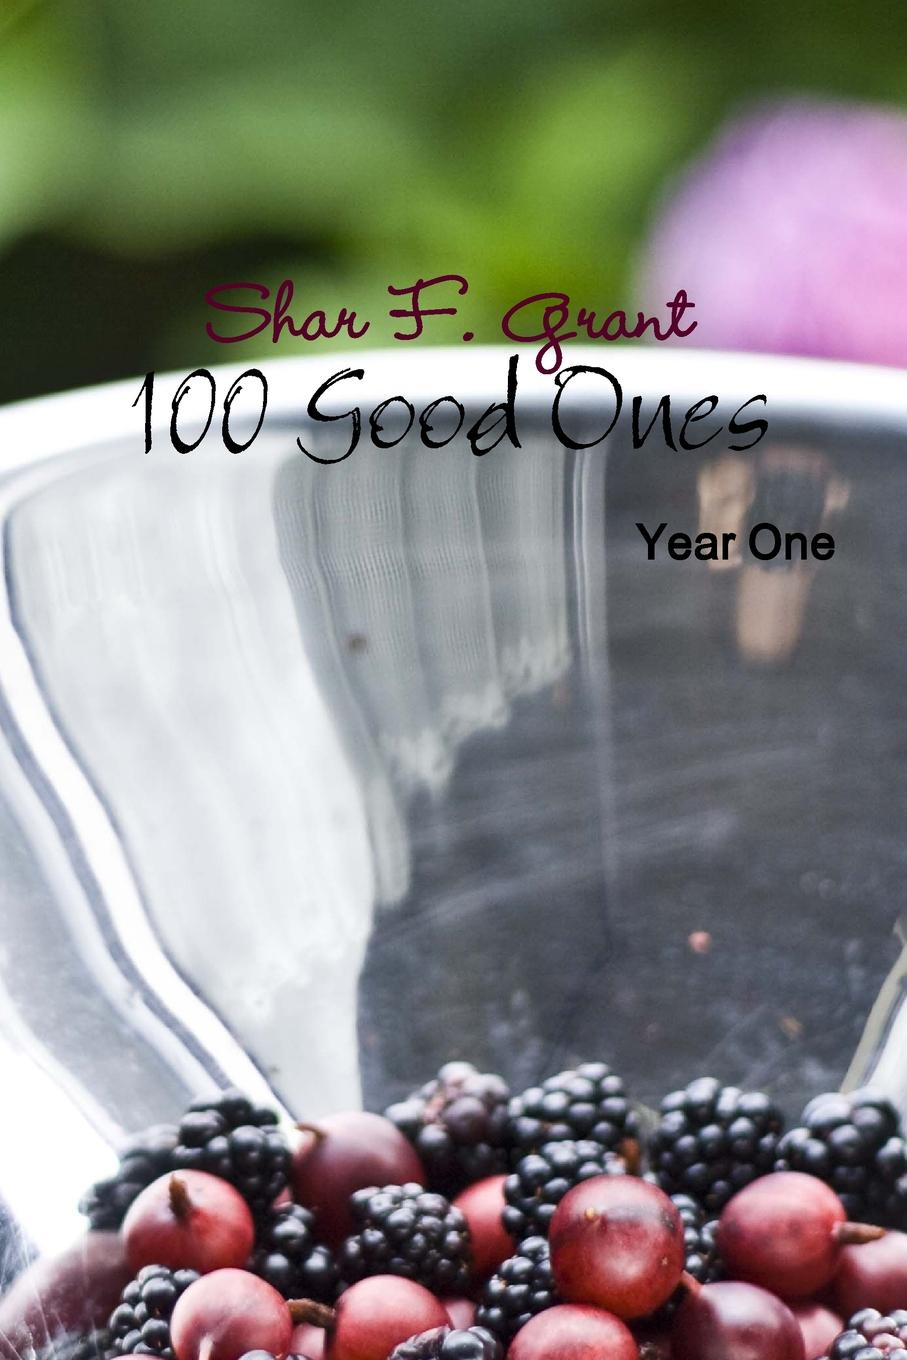 Shar F. Grant 100 Good Ones, Year One jd mcpherson jd mcpherson let the good times roll